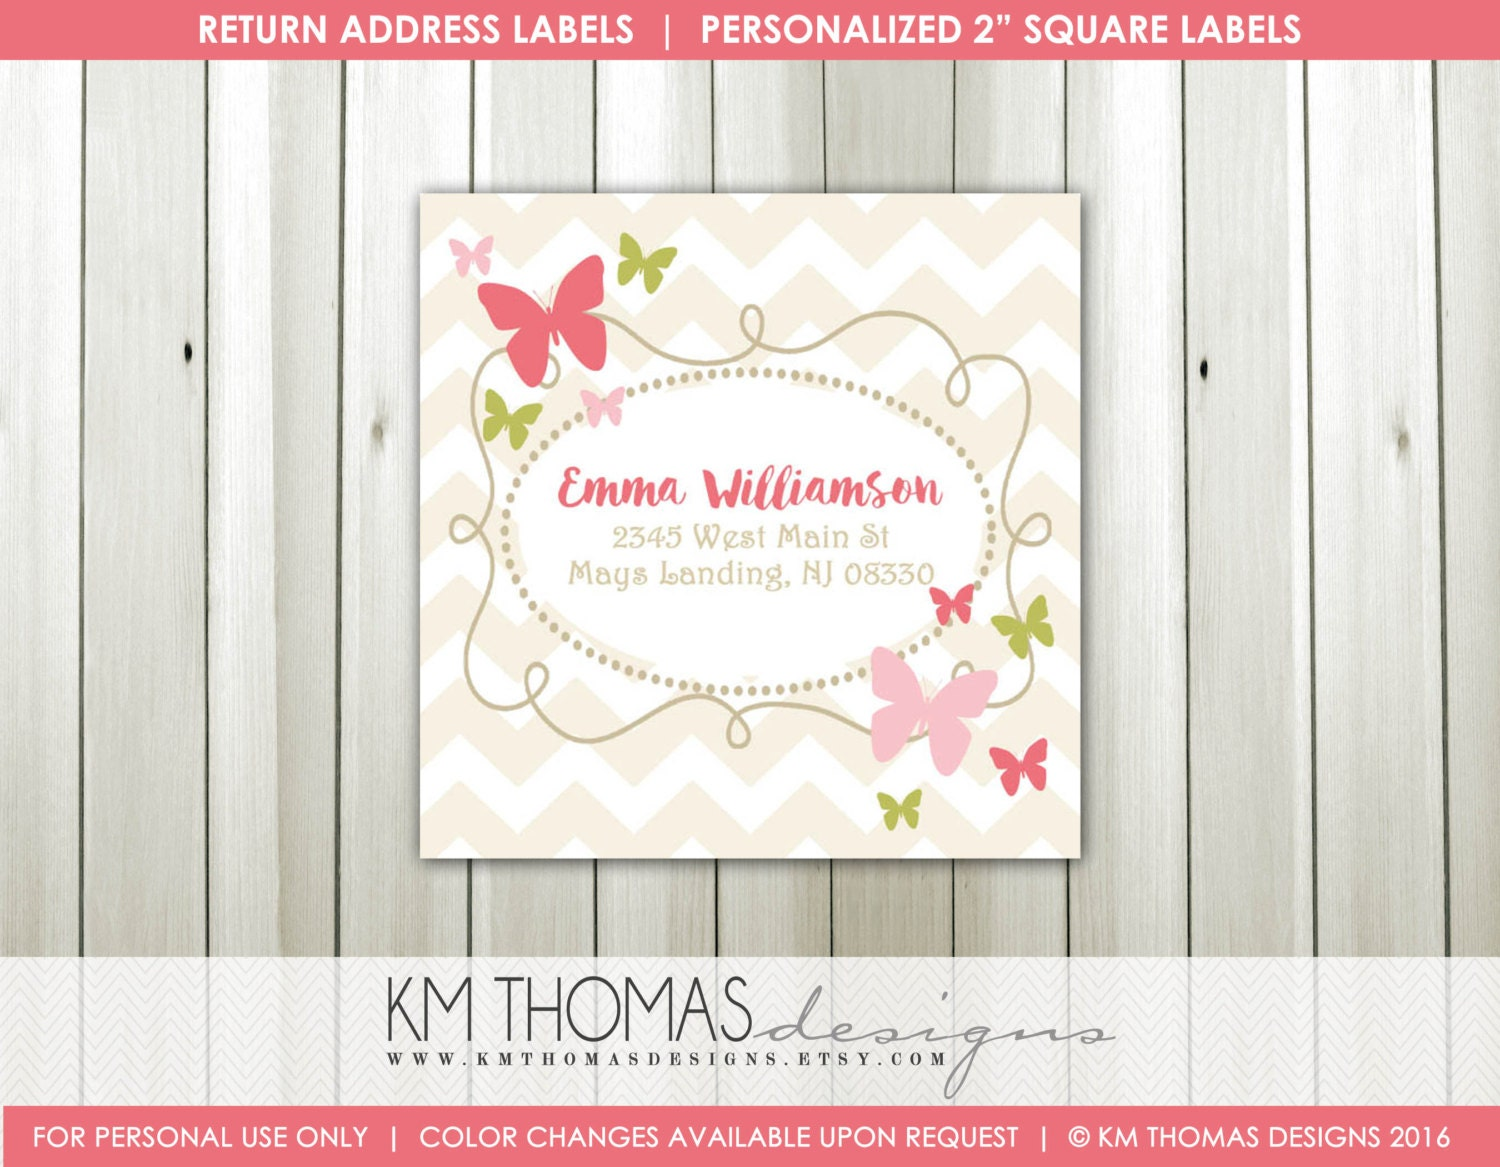 It's just an image of Epic Printable Return Address Labels